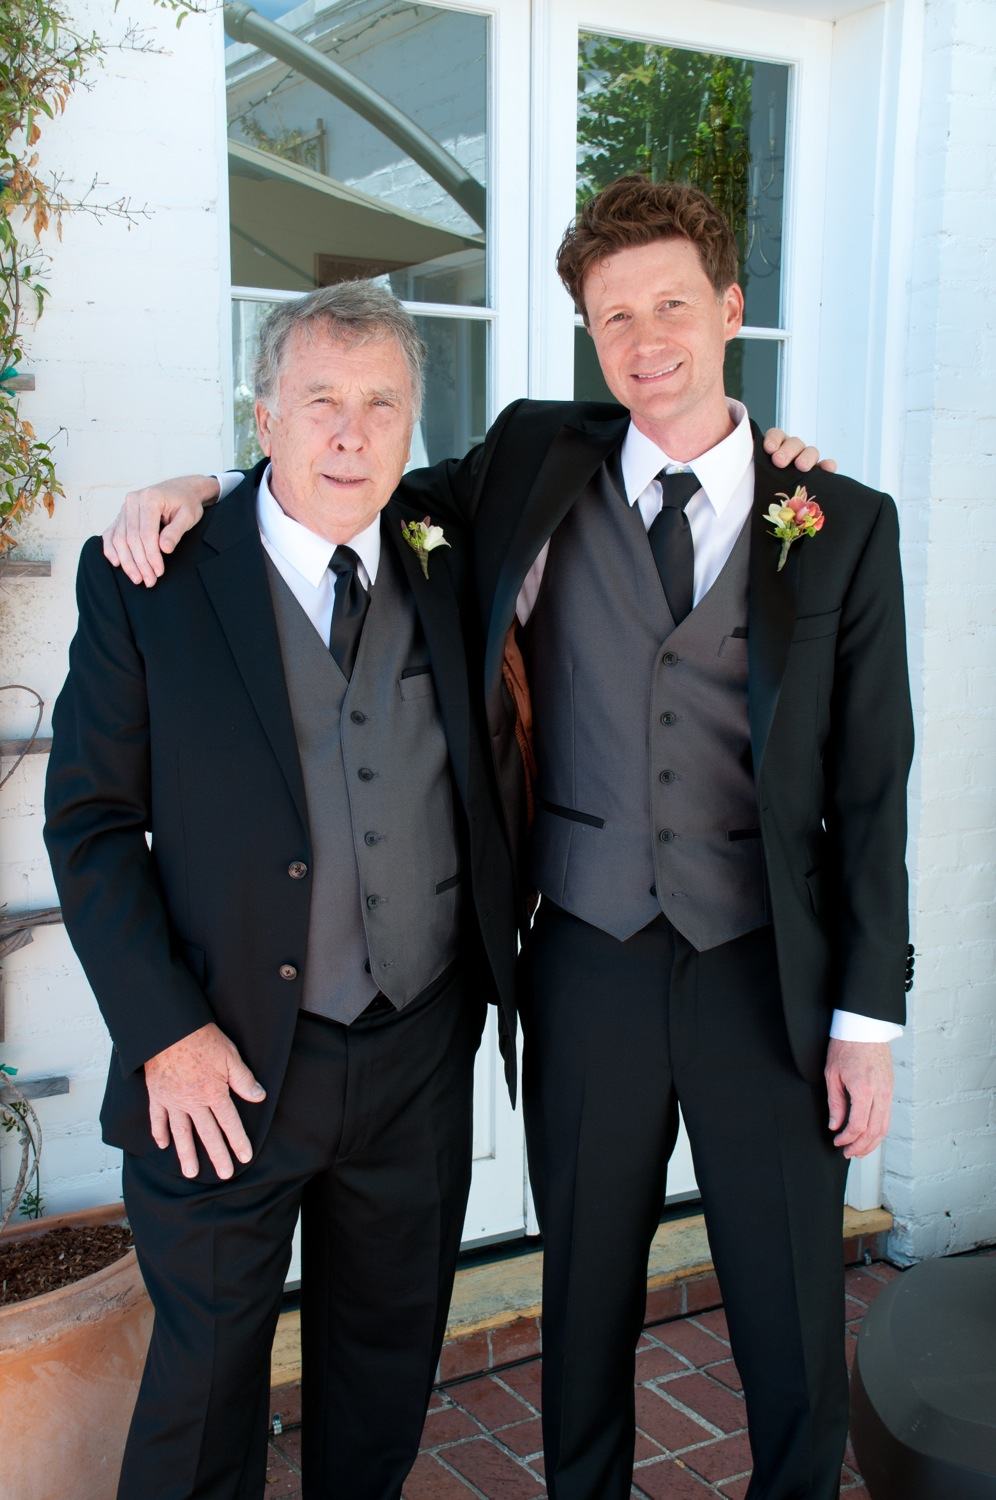 Jerram with the father of the bride, Glen.